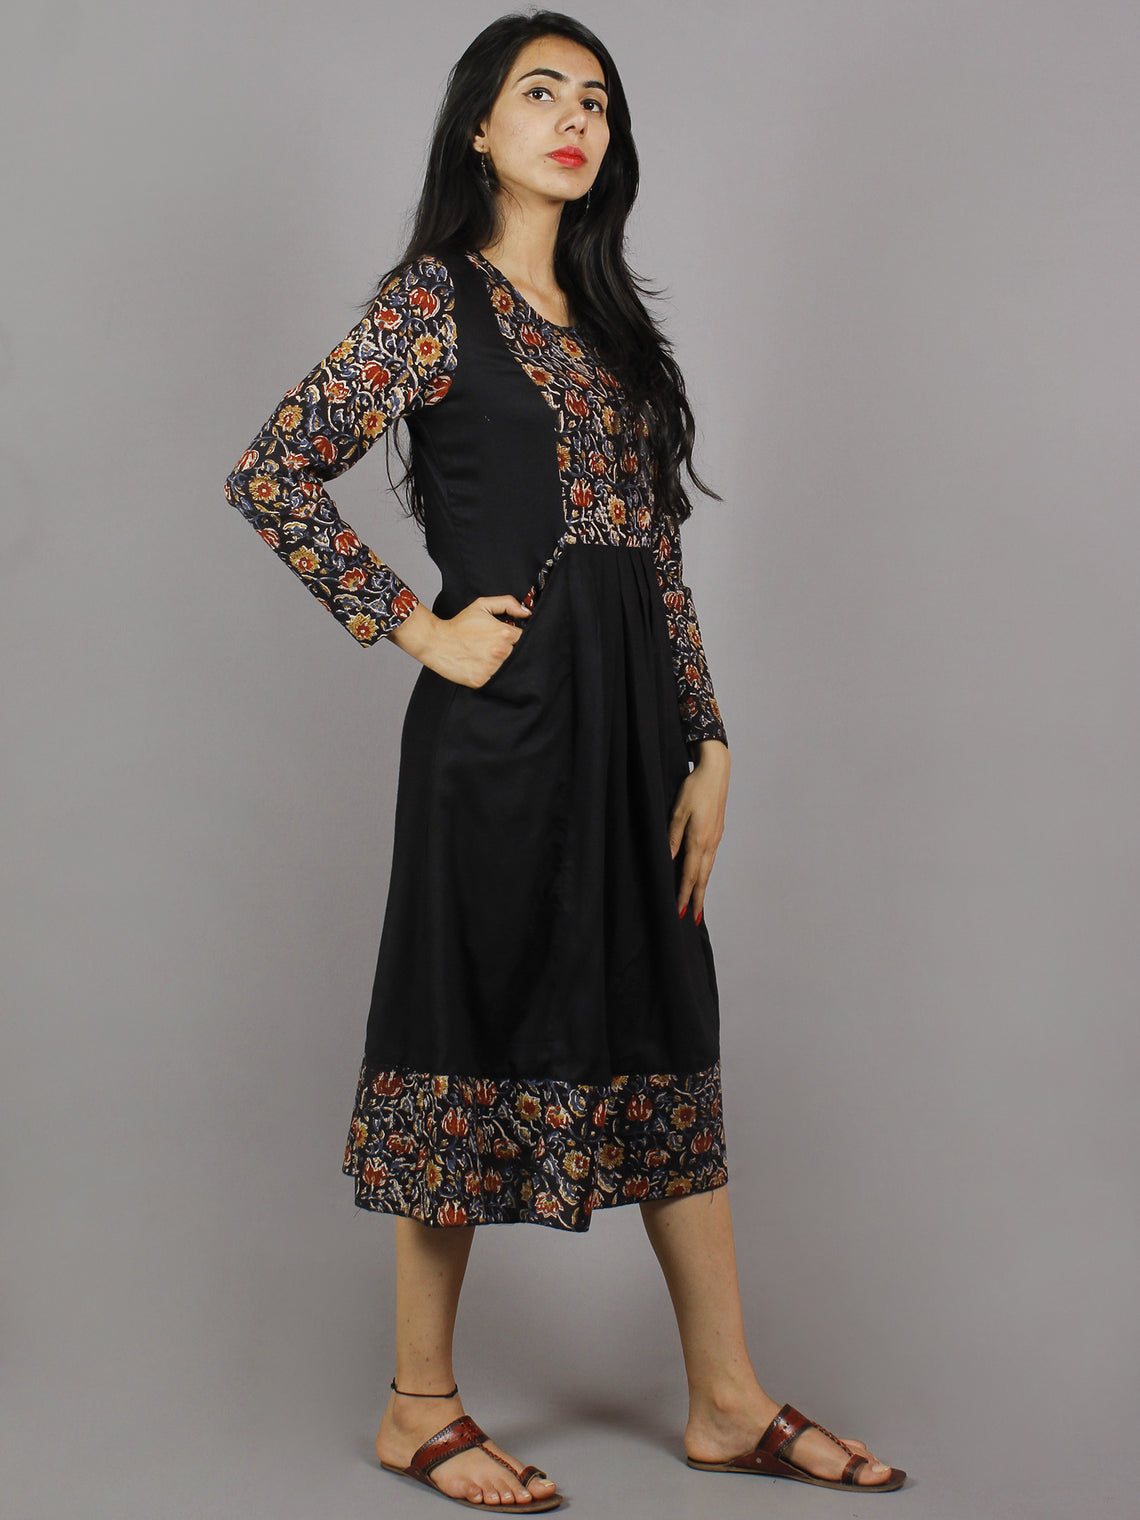 Black Maroon Blue Hand Block Printed Cotton & Rayon Midi Dress With Side Pockets - D3559501